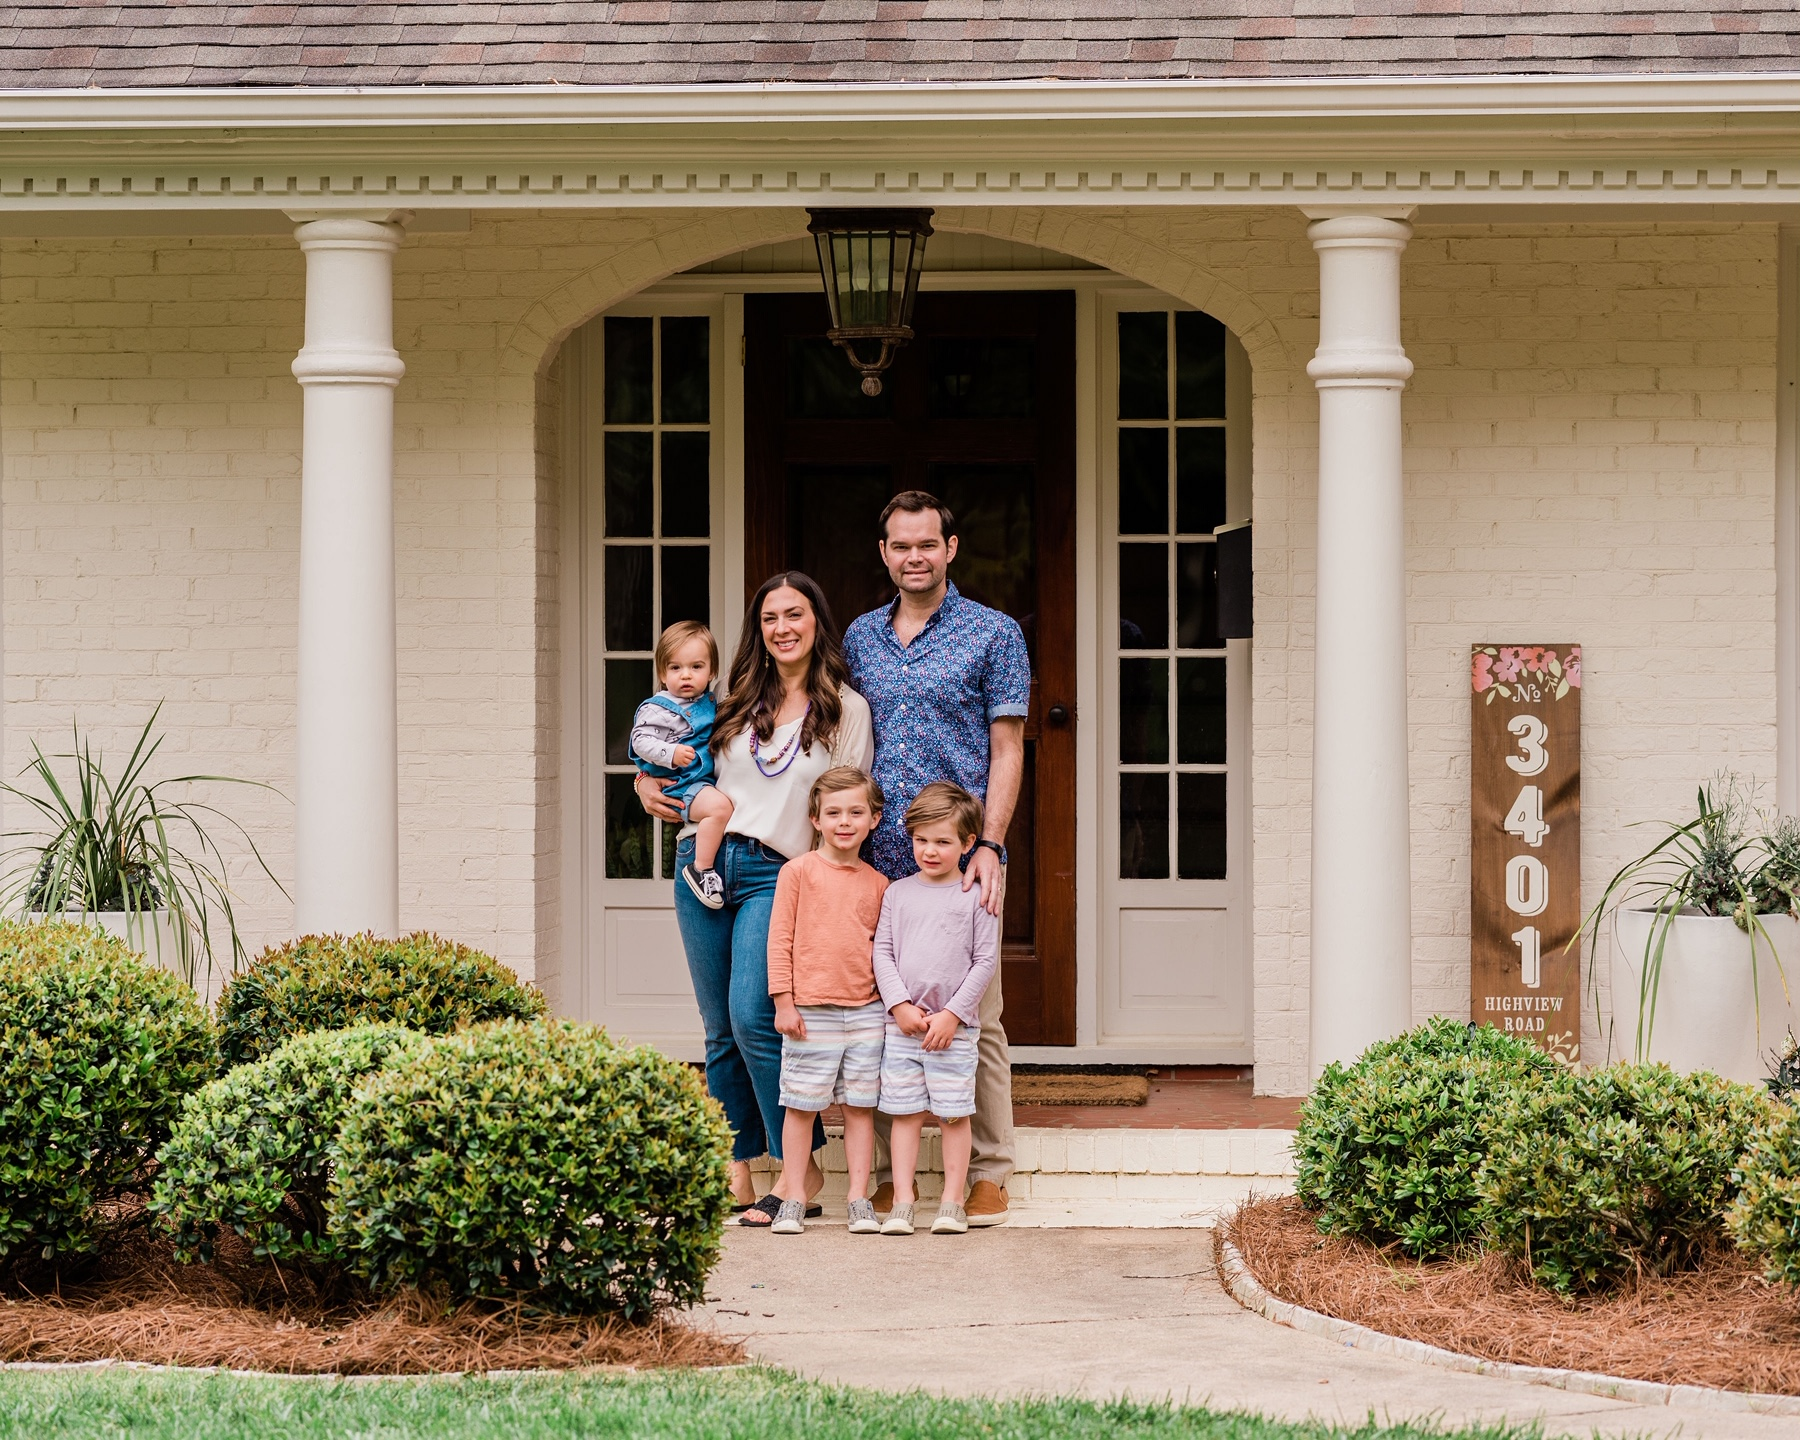 Savvy Home Buyer Series: A Growing Family Needs More Space